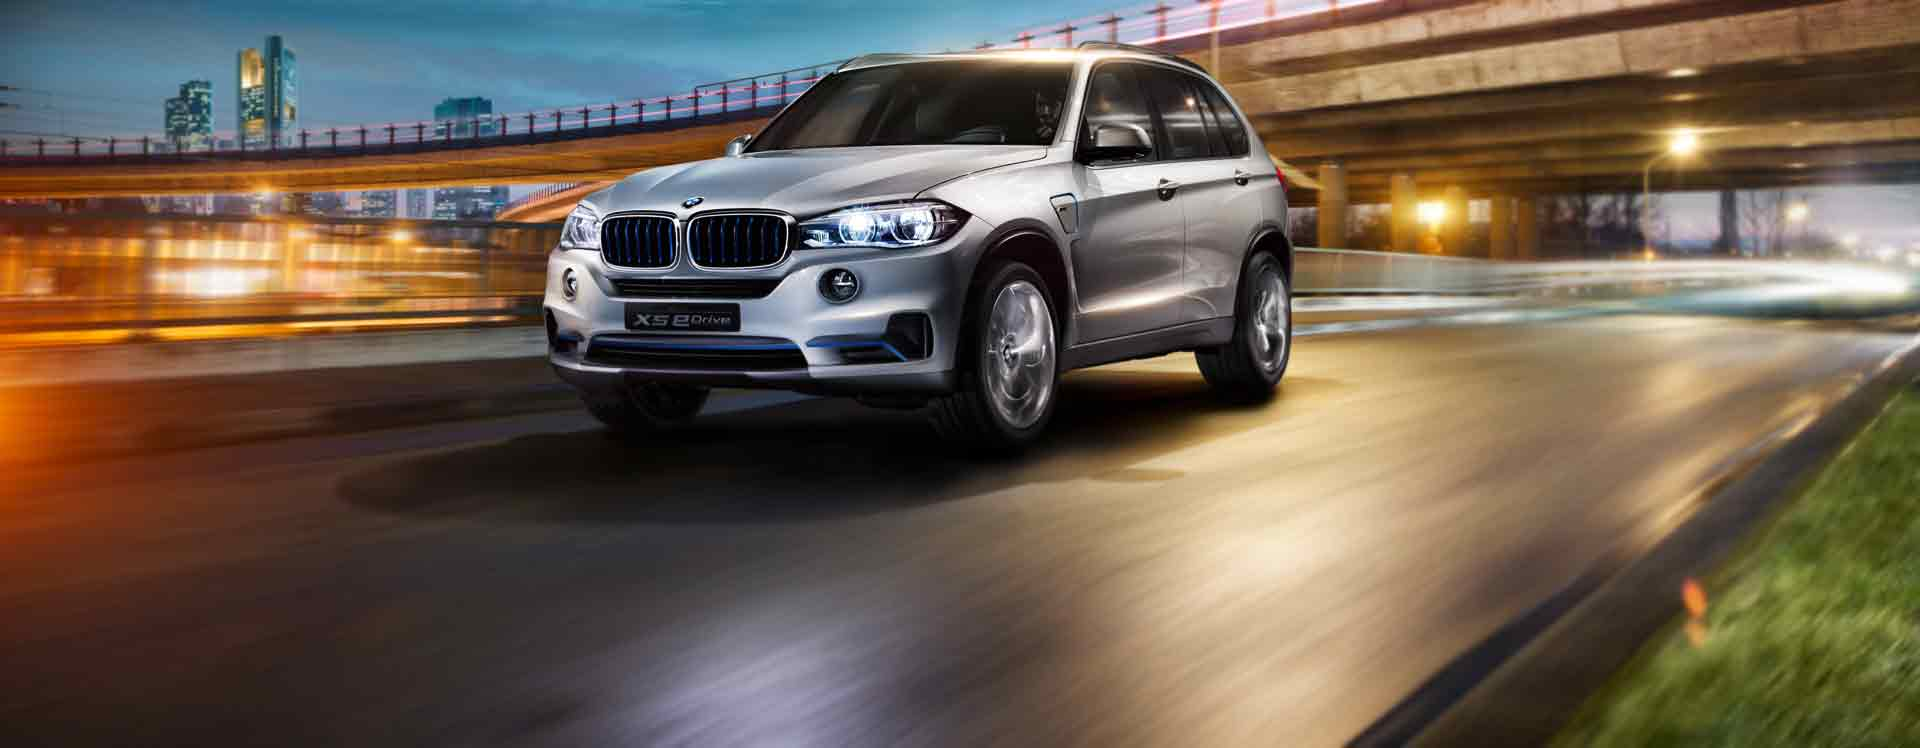 BMW X5 Maintenance Cost and Schedule Guide